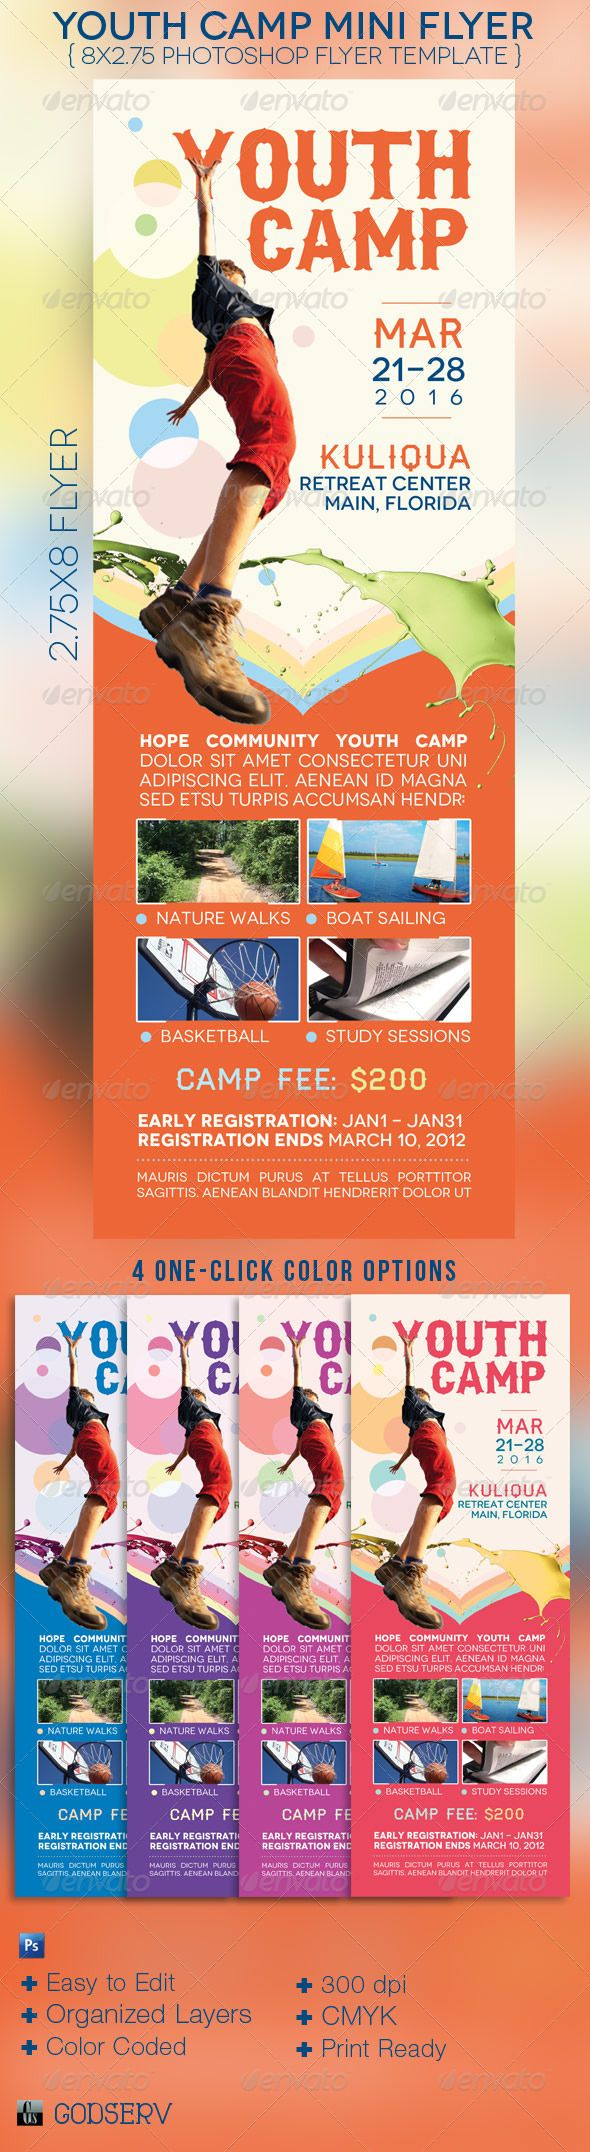 youth camp mini flyer template flyer template flyer design and youth camp mini flyer template 6 00